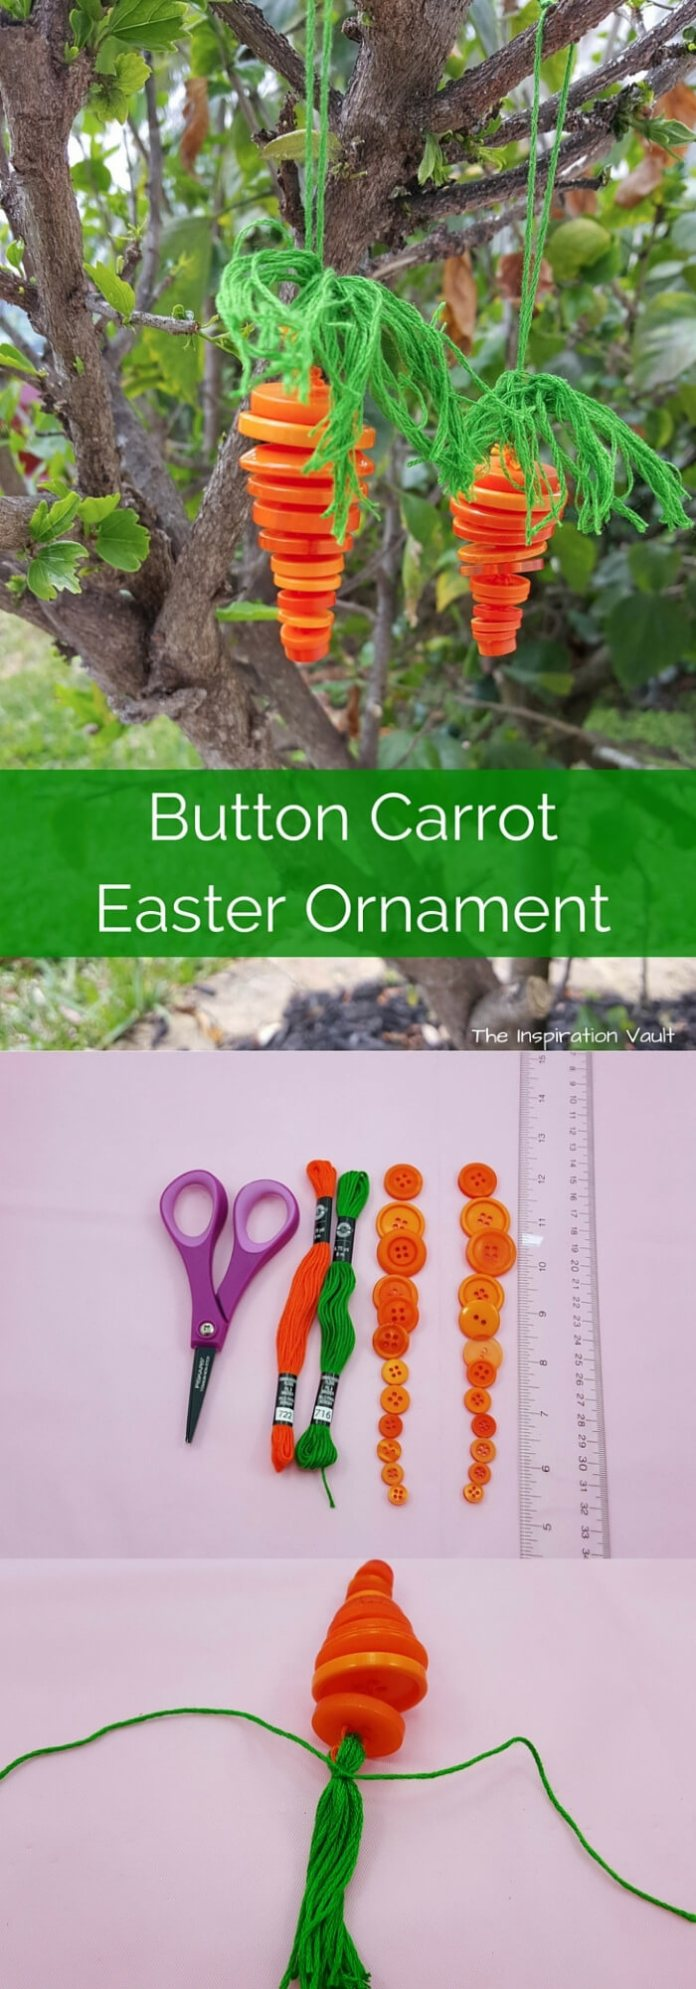 Button carrot Easter ornament | Creative Easter Garden Projects & Ideas Your Kids Will Love